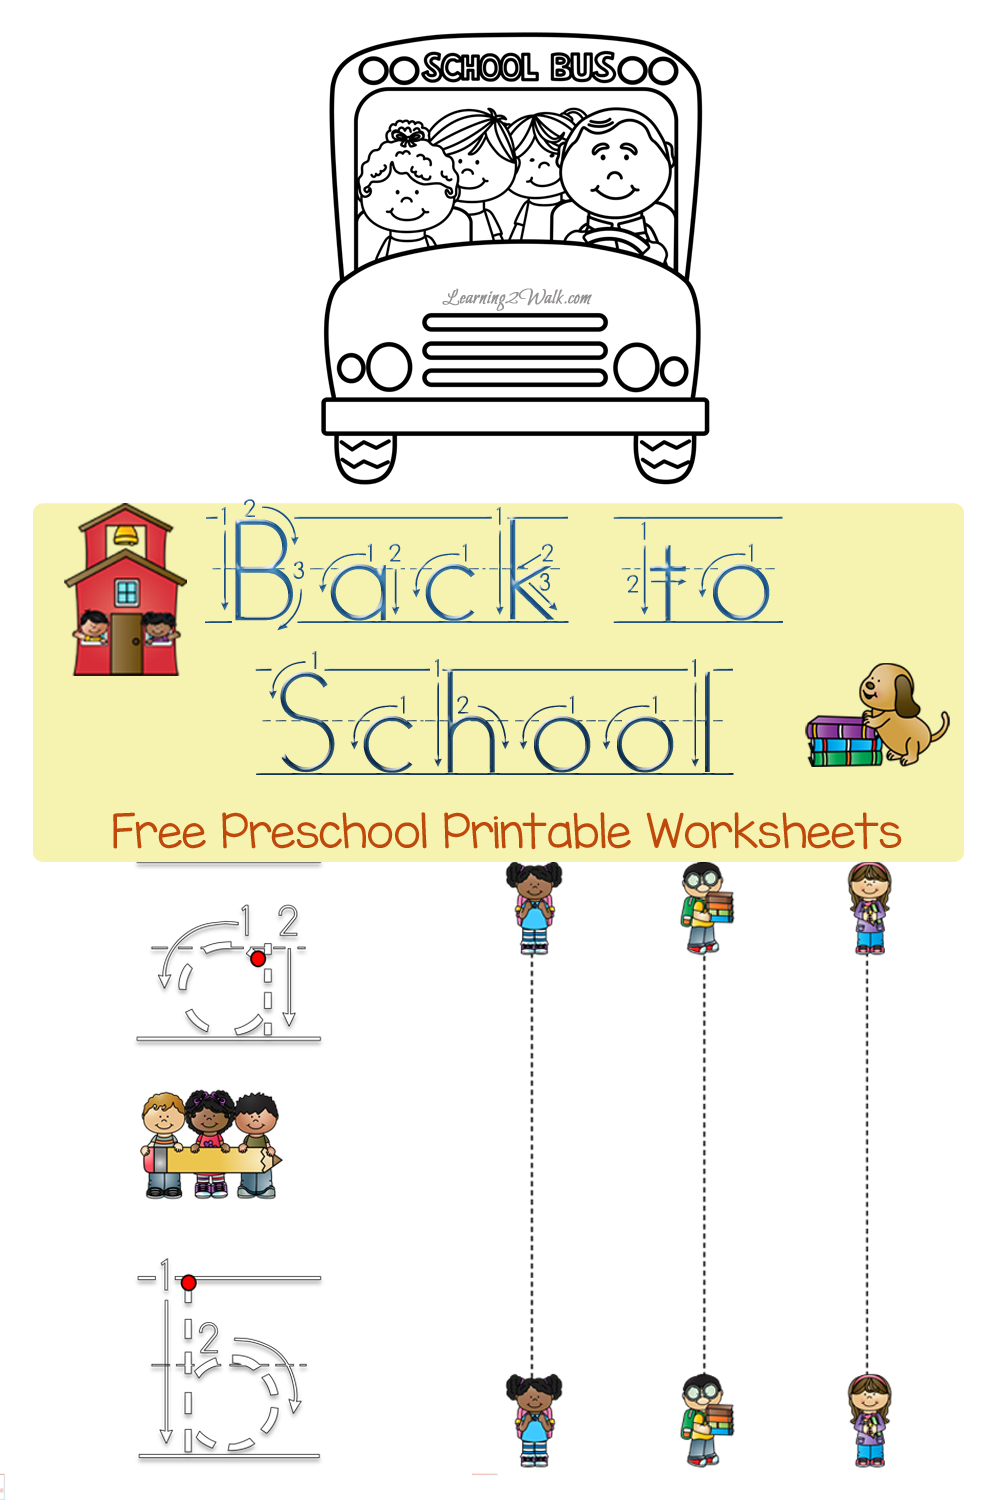 Back to school season is here! Everywhere I turn I am seeing back to school sales and I would be lying if I didn't say this kinda makes my heart flutter with excitement. Sort of like this new Back to School Printable pack will!